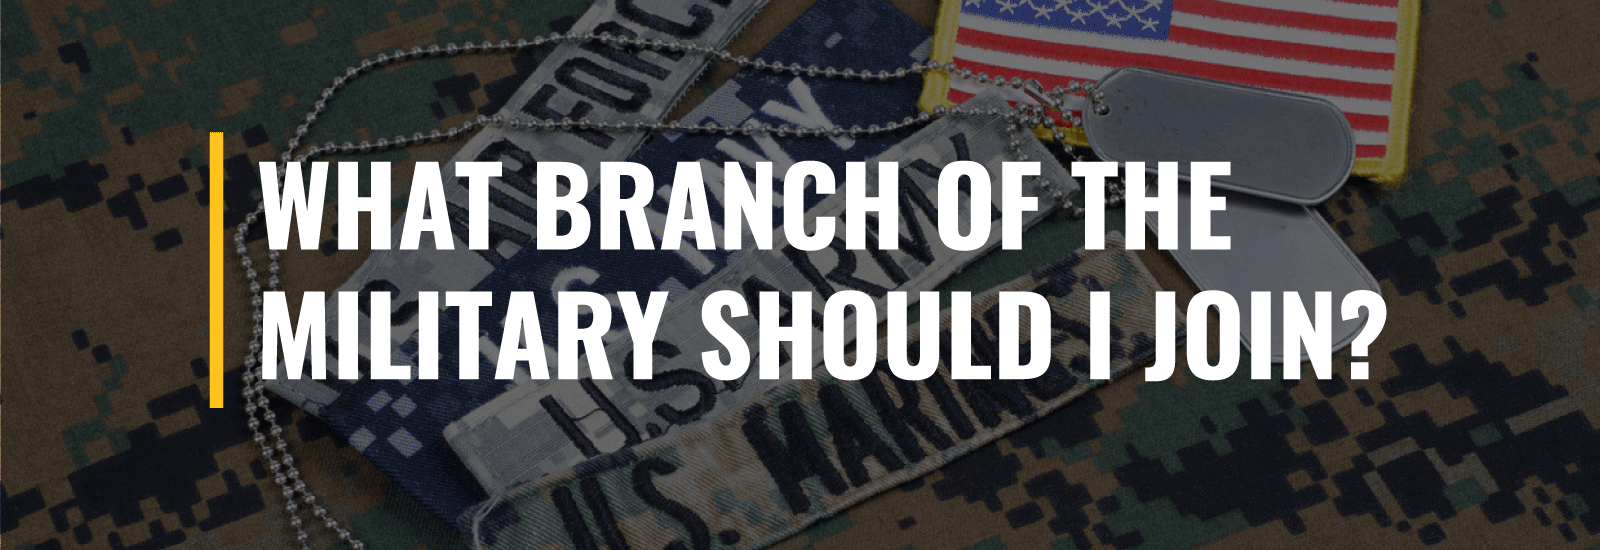 What Branch of the Military Should I Join?